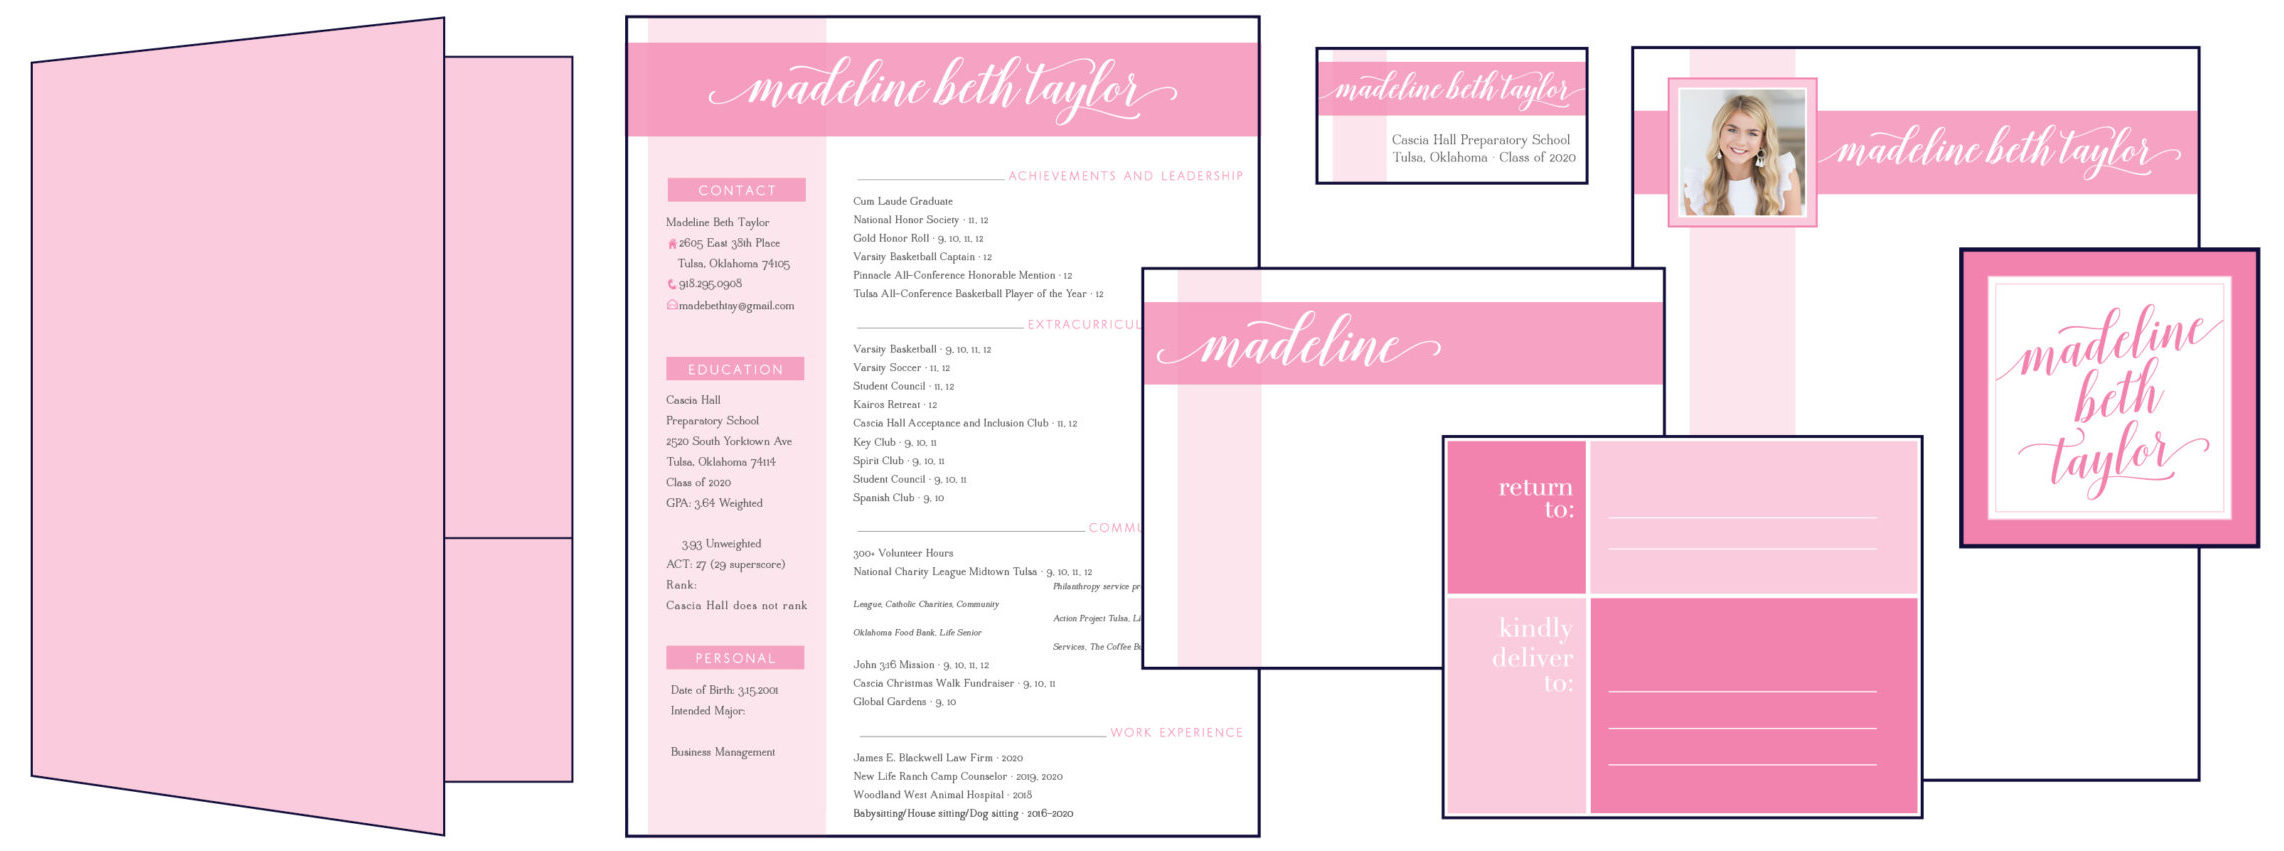 sorority resumes the inviting place best for resume website featured scaled spin Resume Best Picture For Sorority Resume